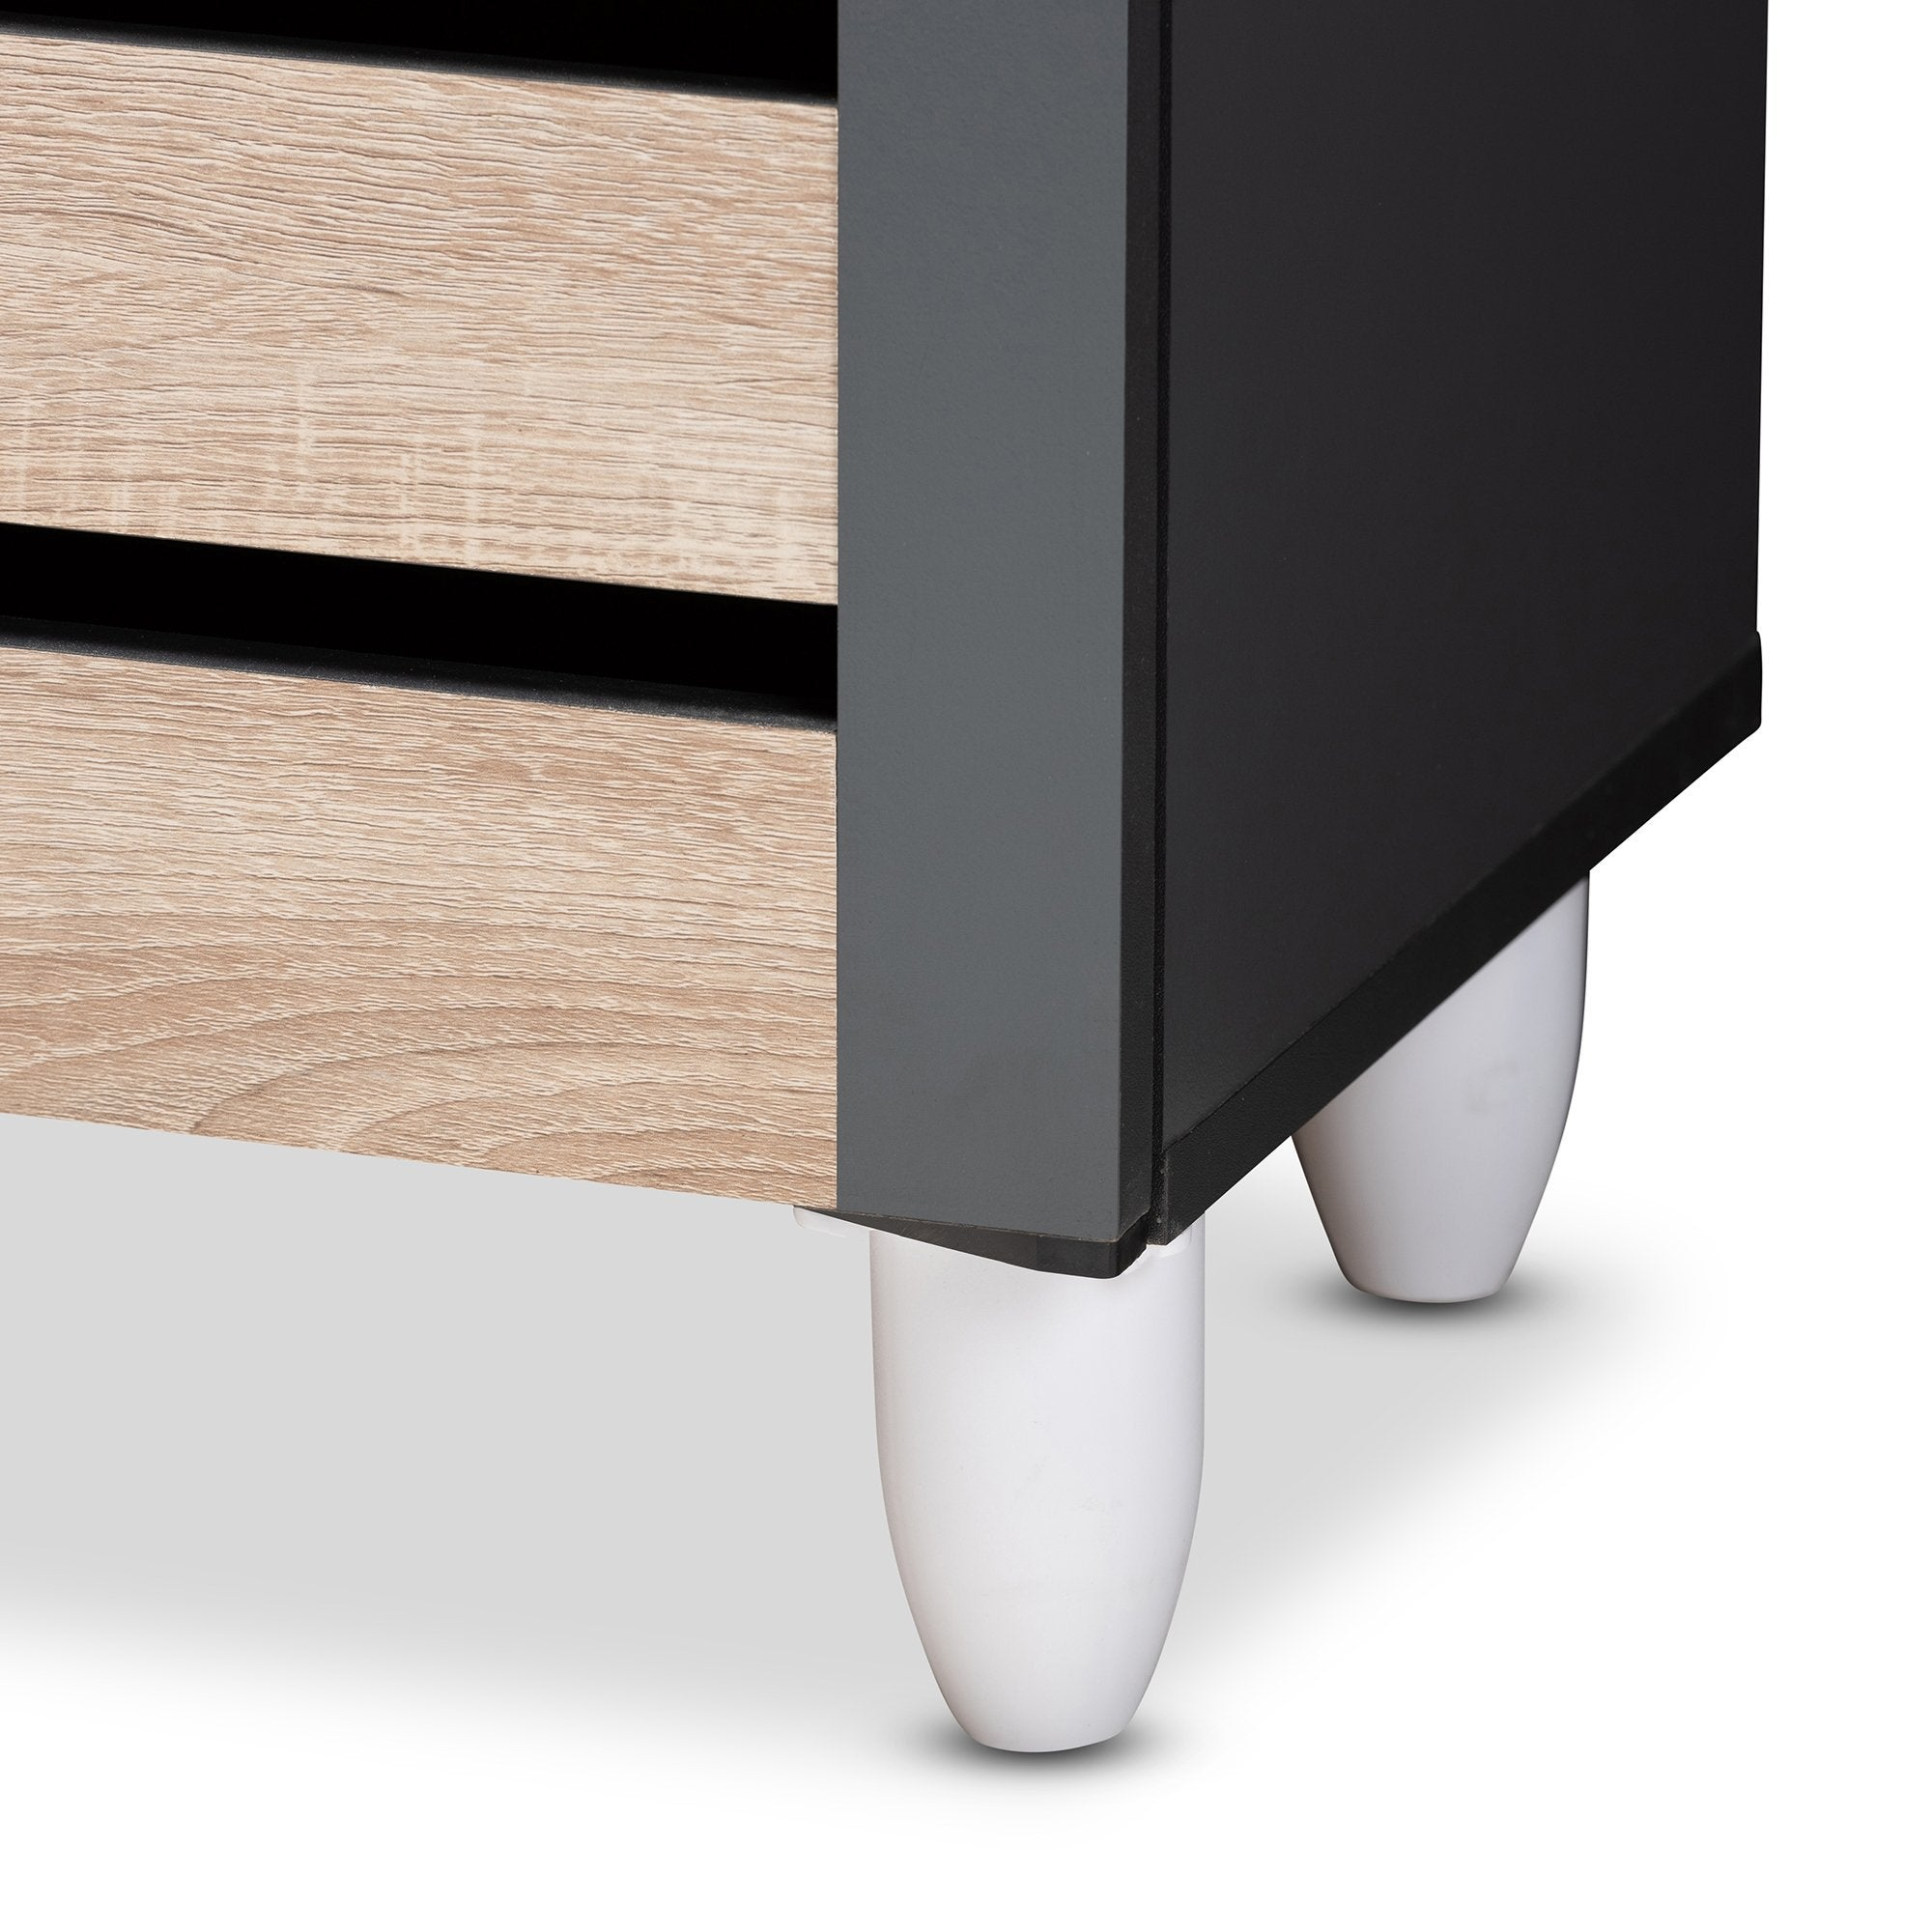 Filip Shoe Cabinet